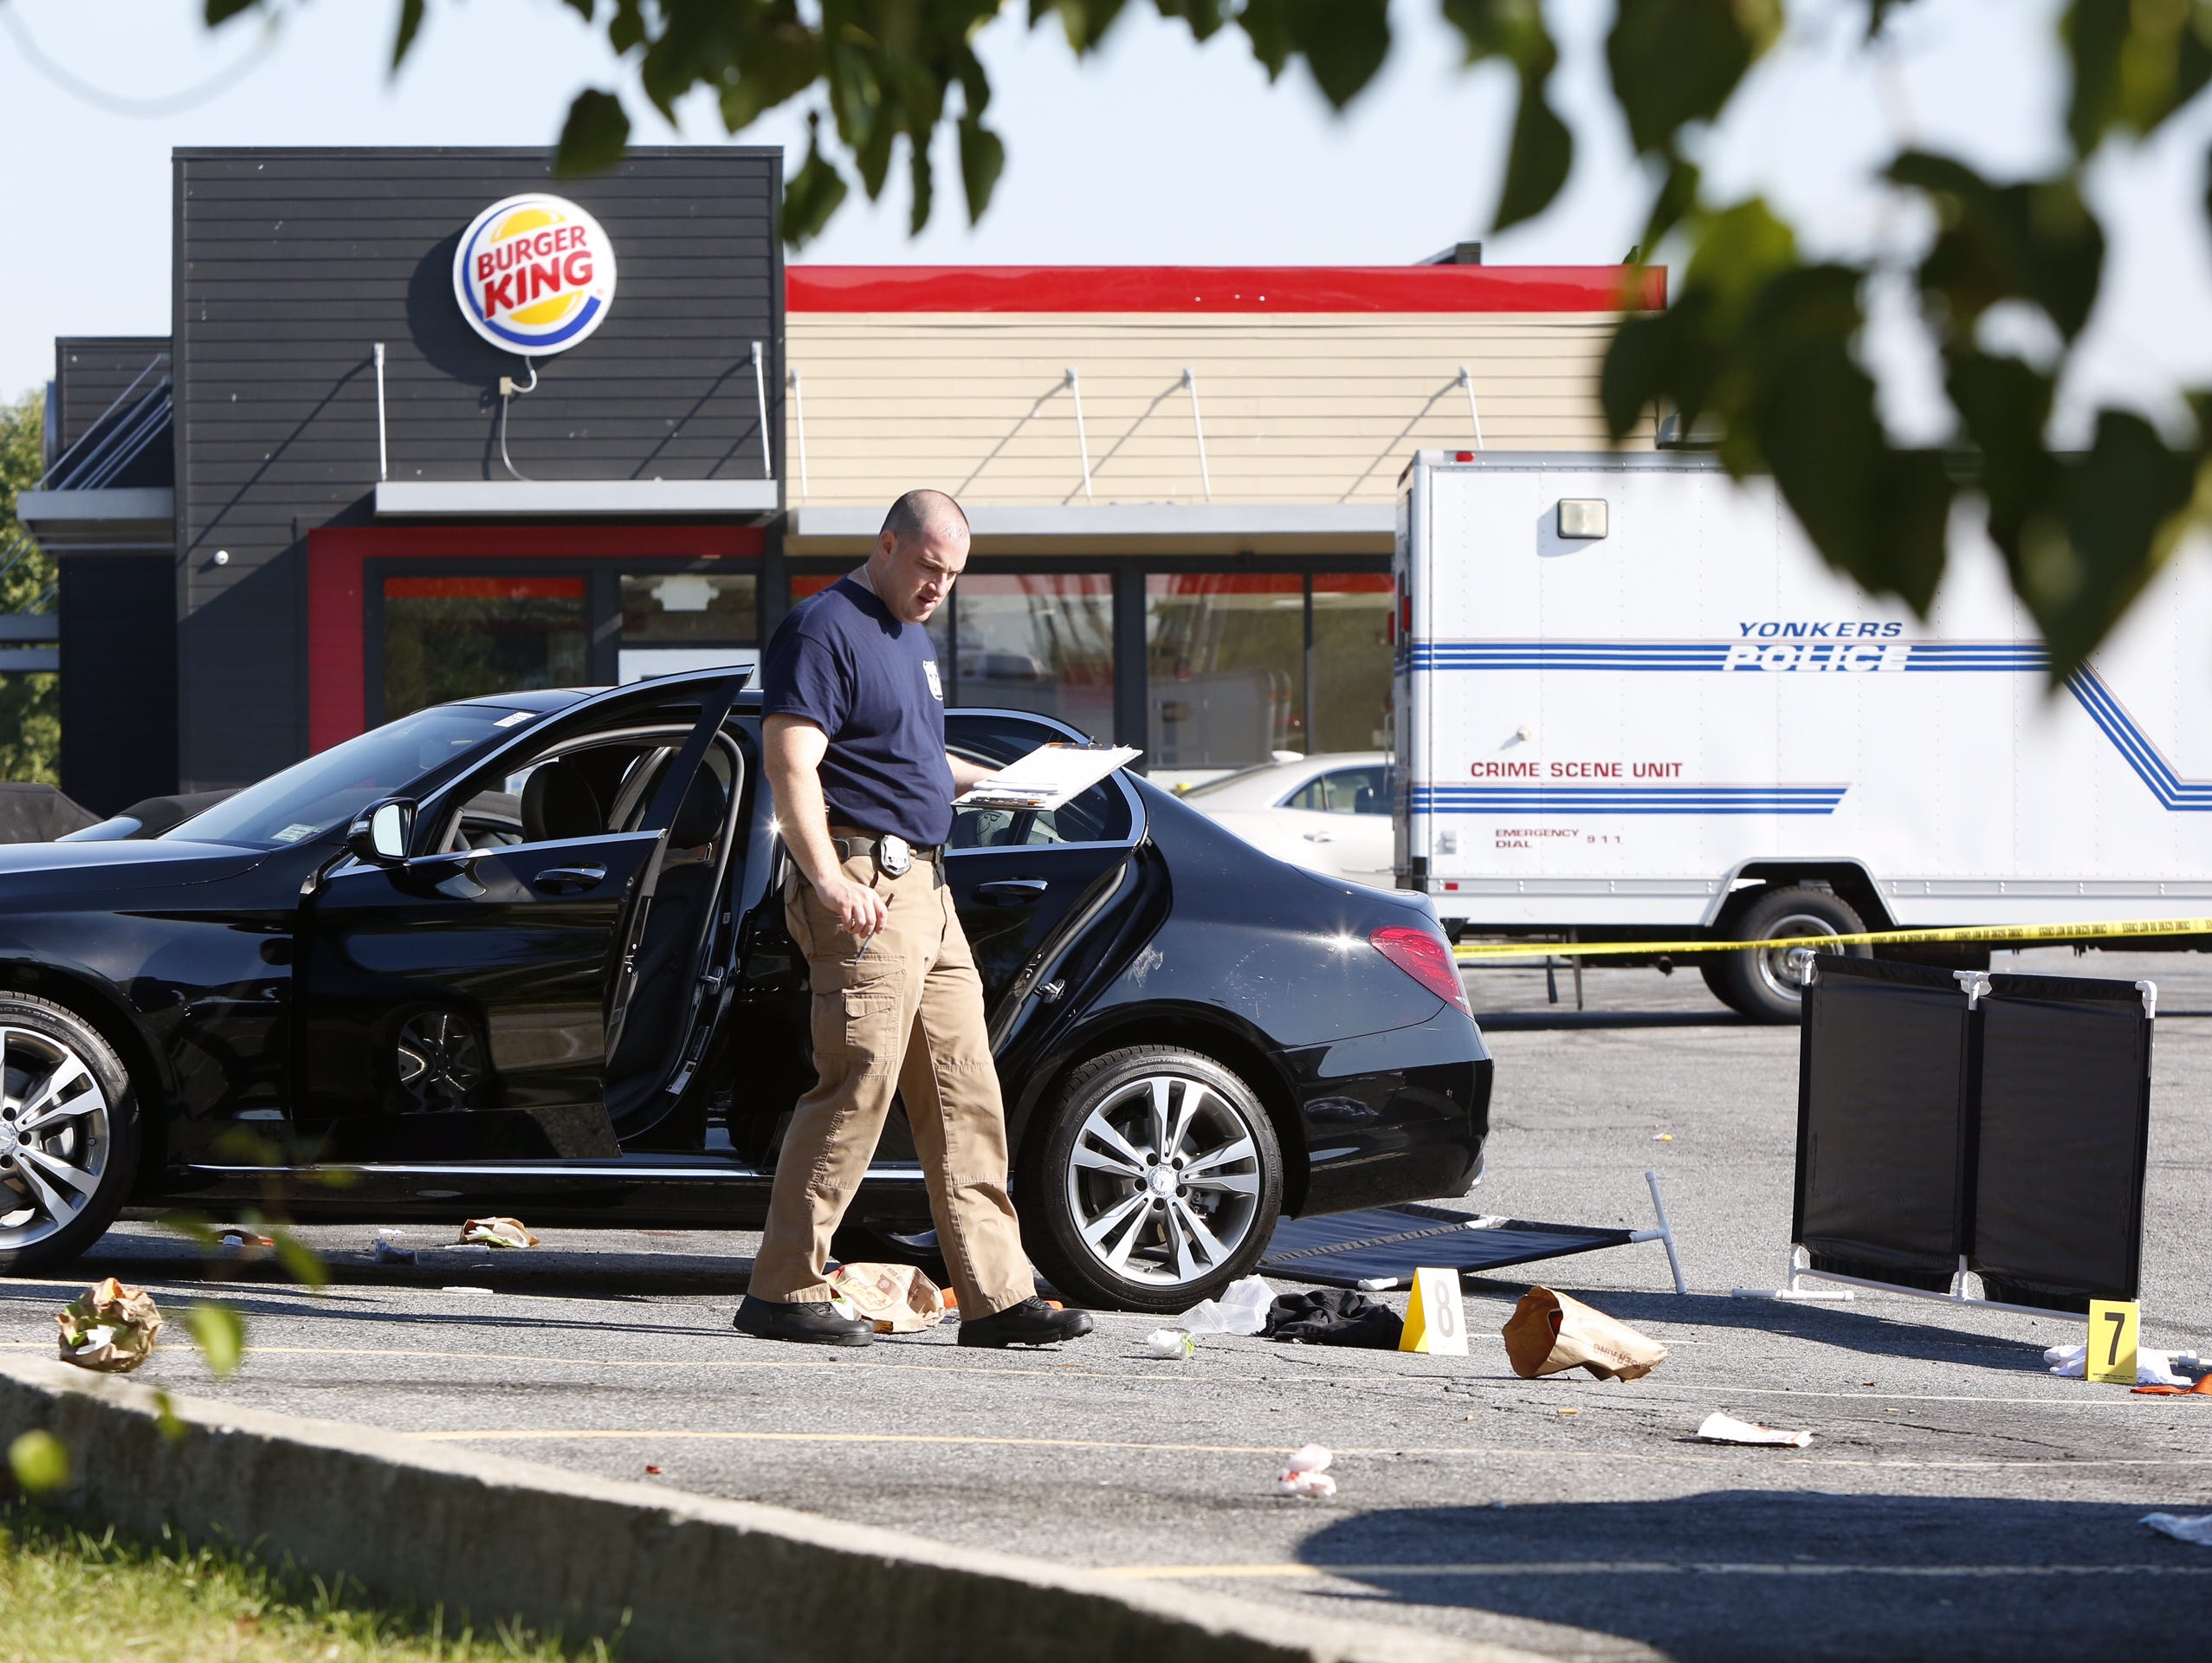 Yonkers police investigate the scene of a shooting in the Burger King parking lot in Yonkers on Sept. 18, 2015. Mike Nolan, a 23-year-old left-handed pitcher drafted last year by the Oakland A's, was shot just after 12:30 a.m. Friday, Sept. 18, 2015 in the parking lot of the Burger King near the Cross County Shopping Center in Yonkers, officials said.